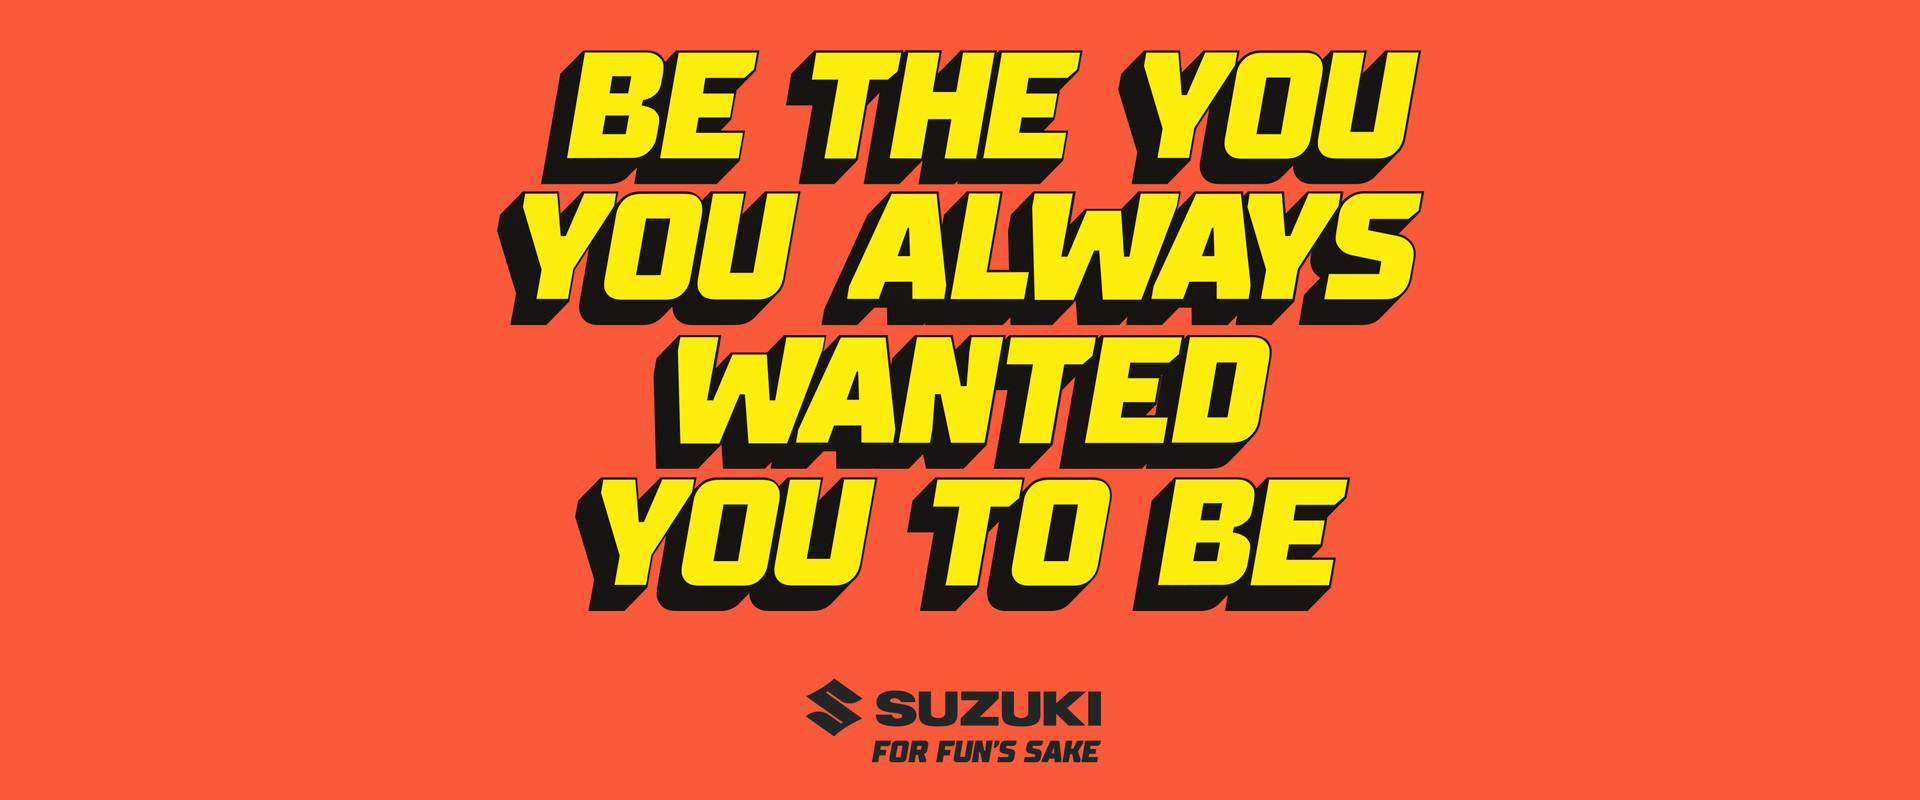 Suzuki - Be The You, You Always Wanted You To Be